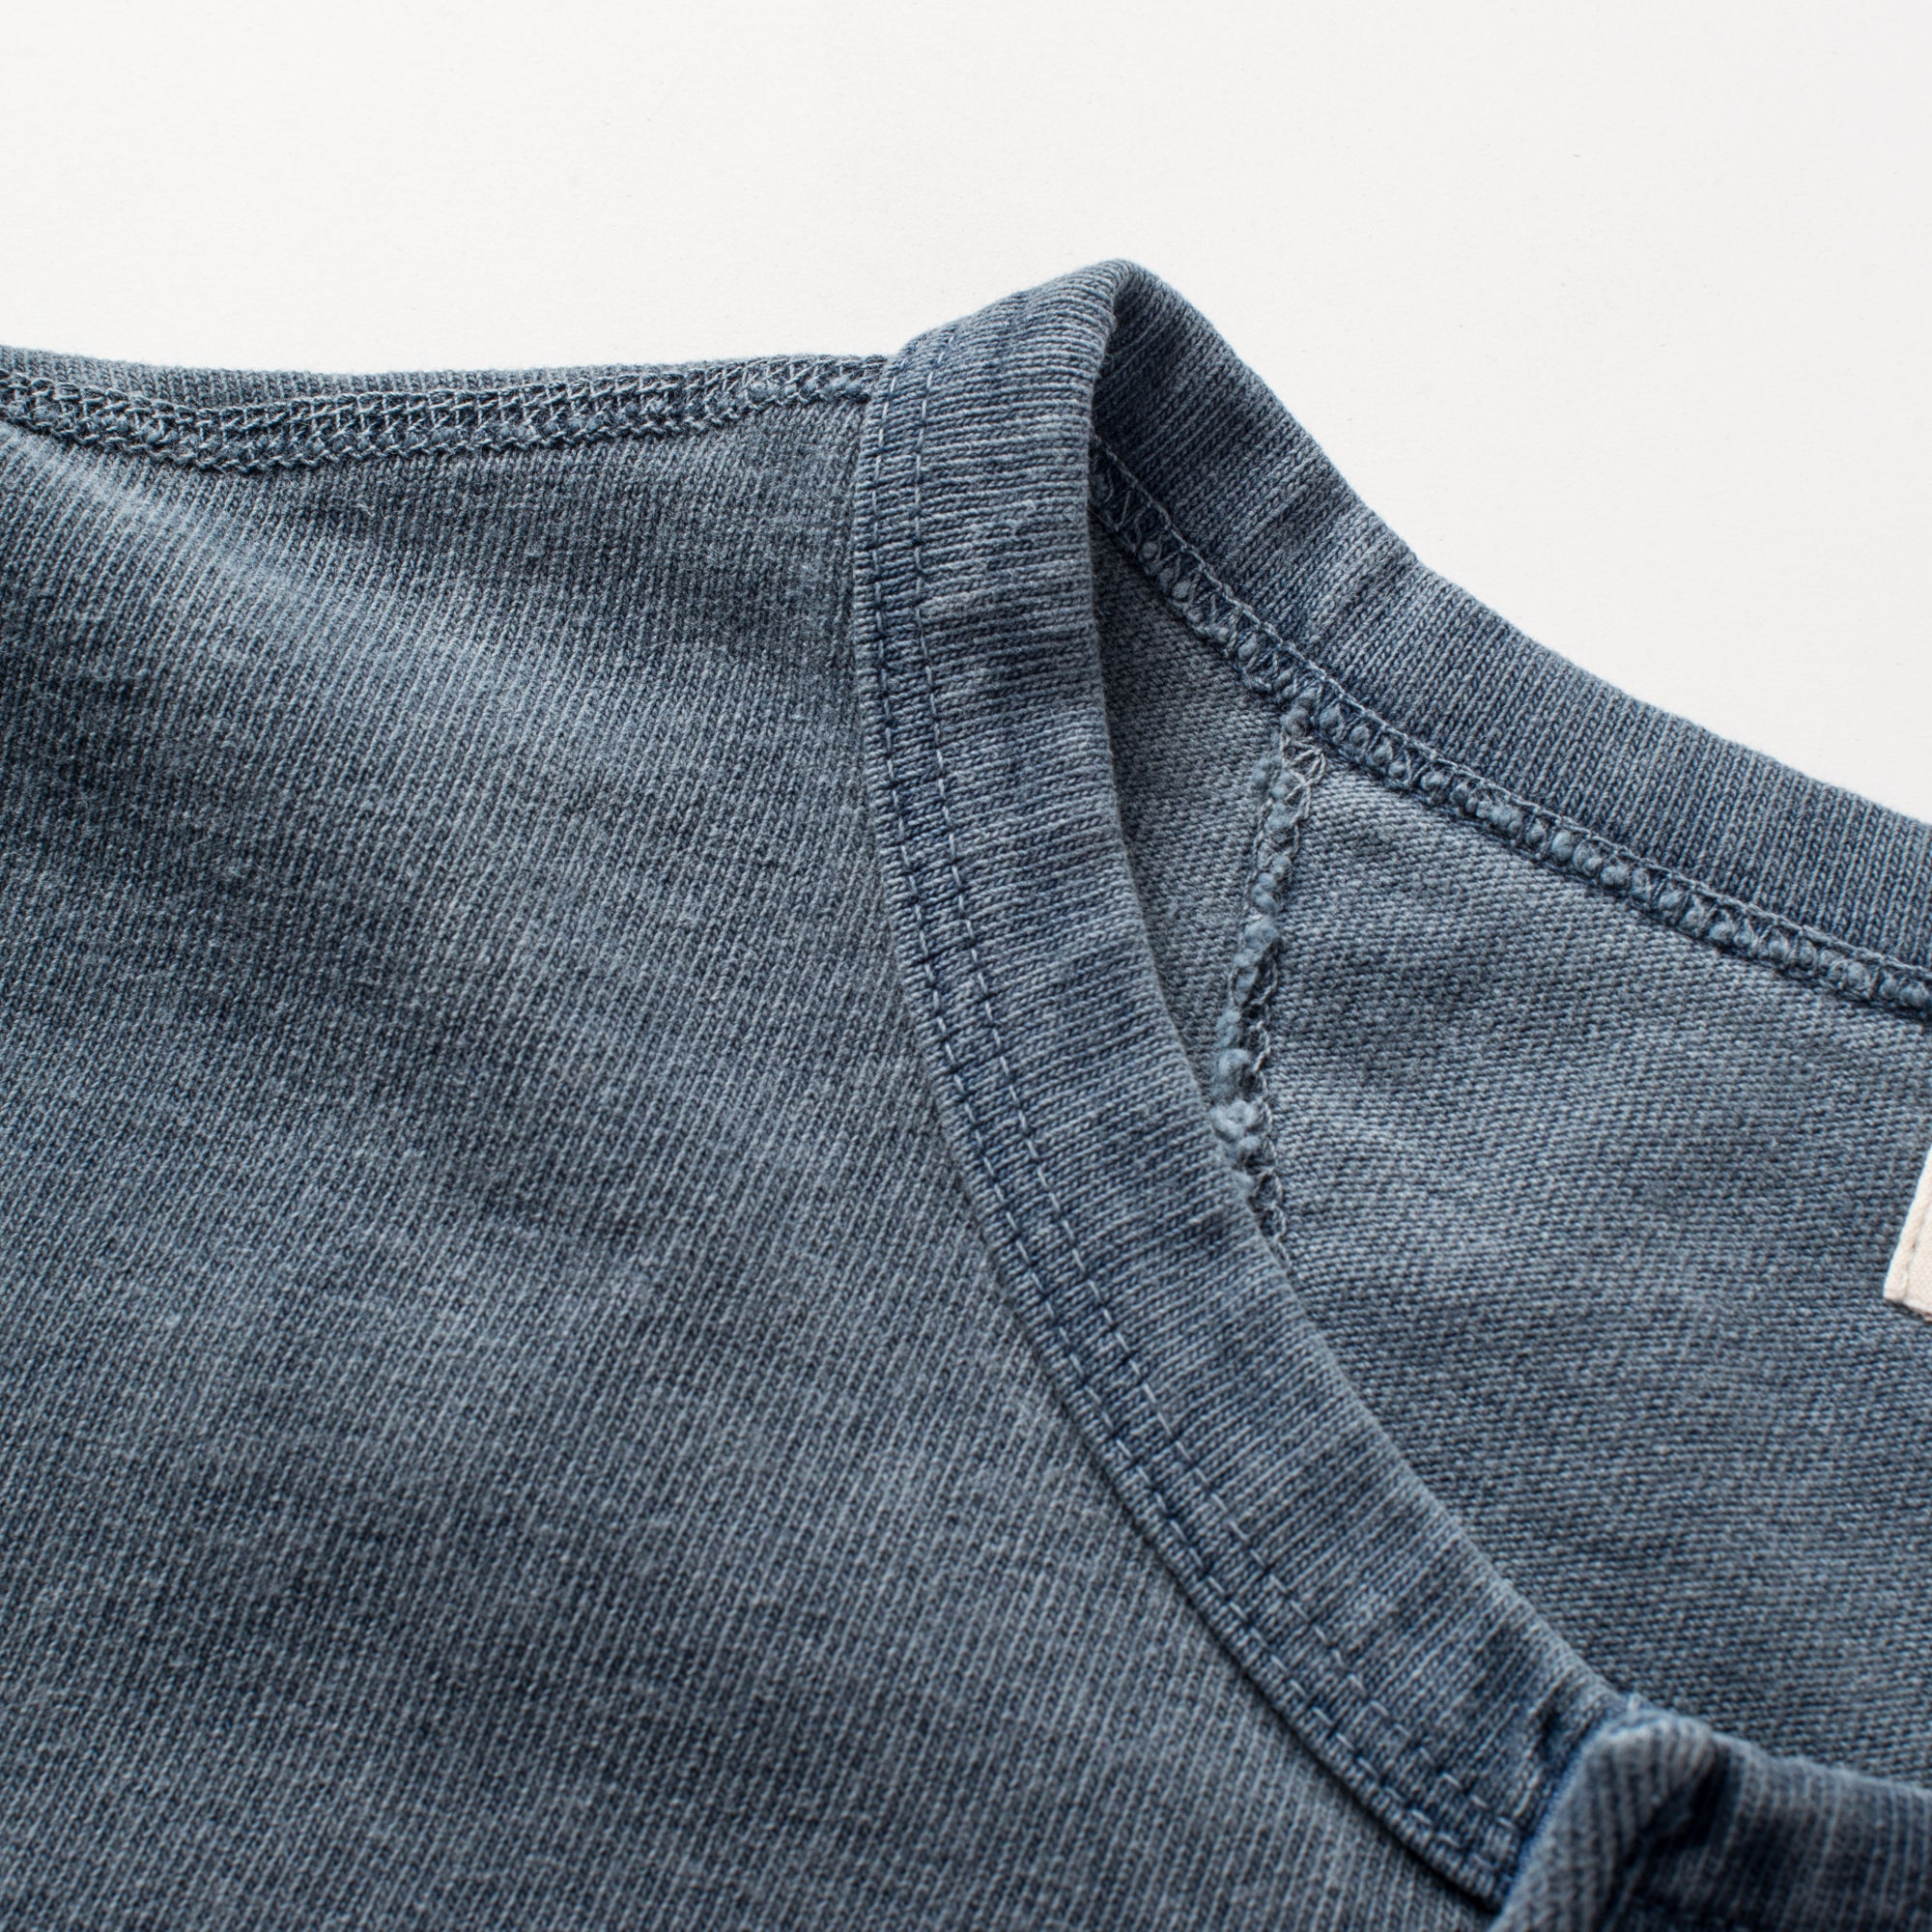 13 ounce Henley LS Faded Blue Collar